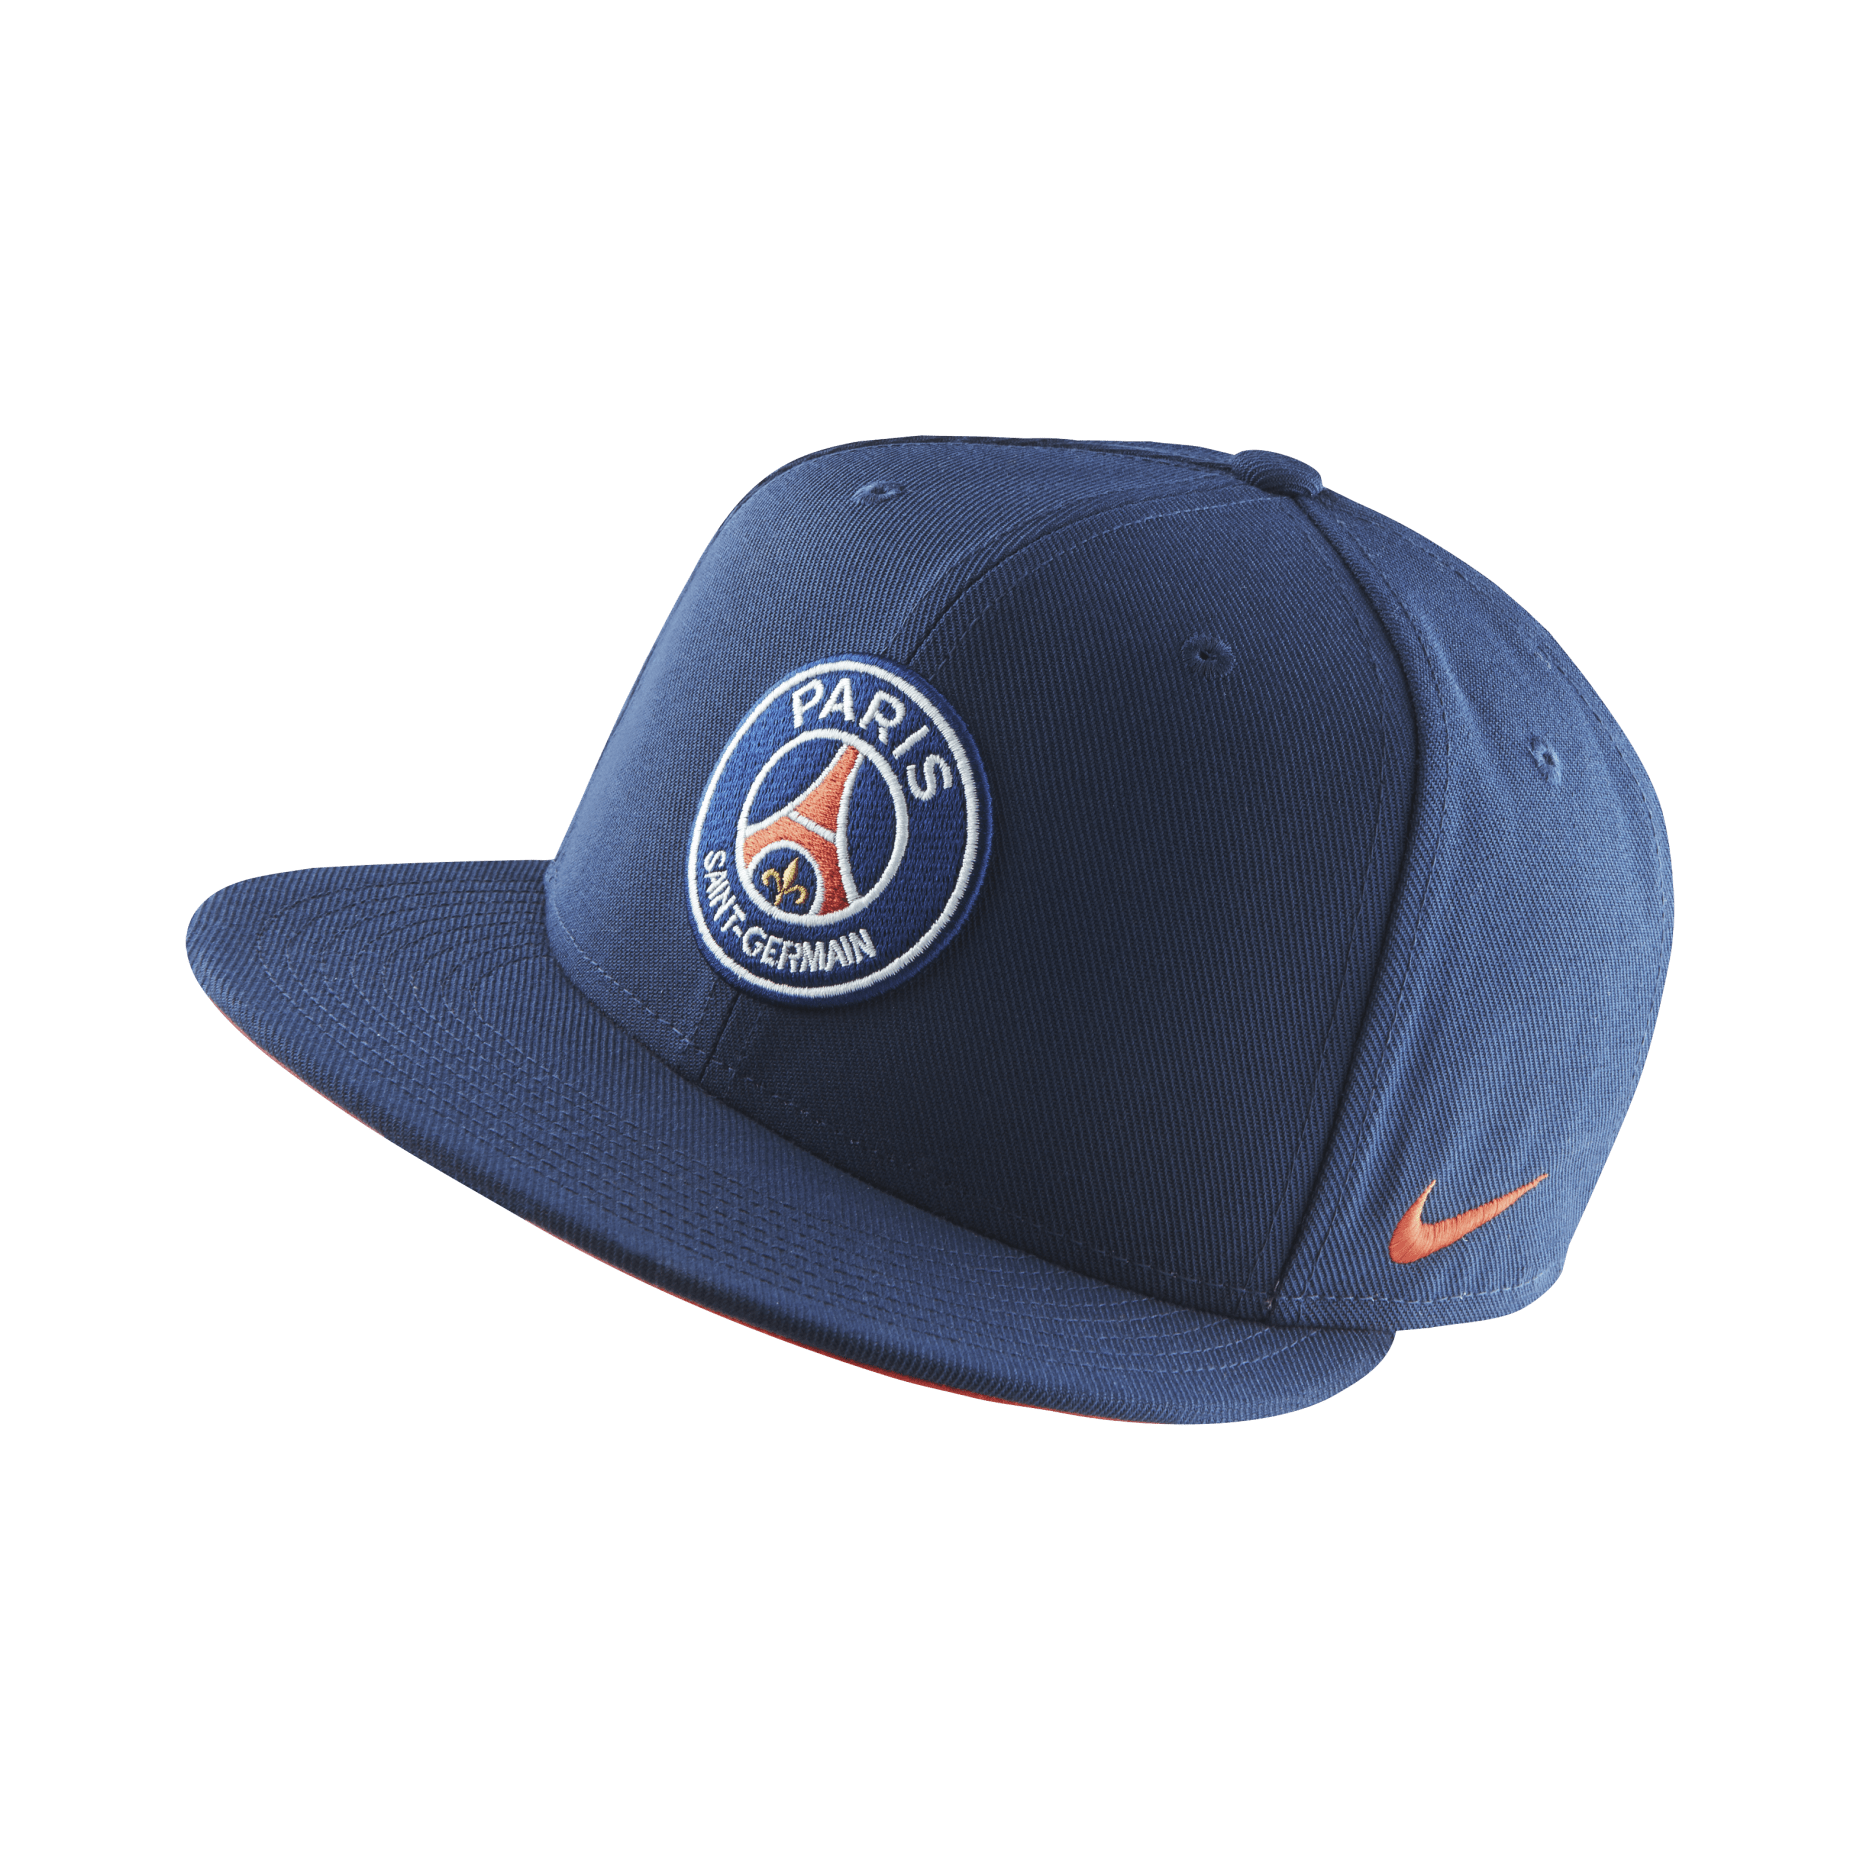 d4a1da40d6c49 Nike - Nike Paris Saint-Germain Core Adjustable Hat - La Liga Soccer